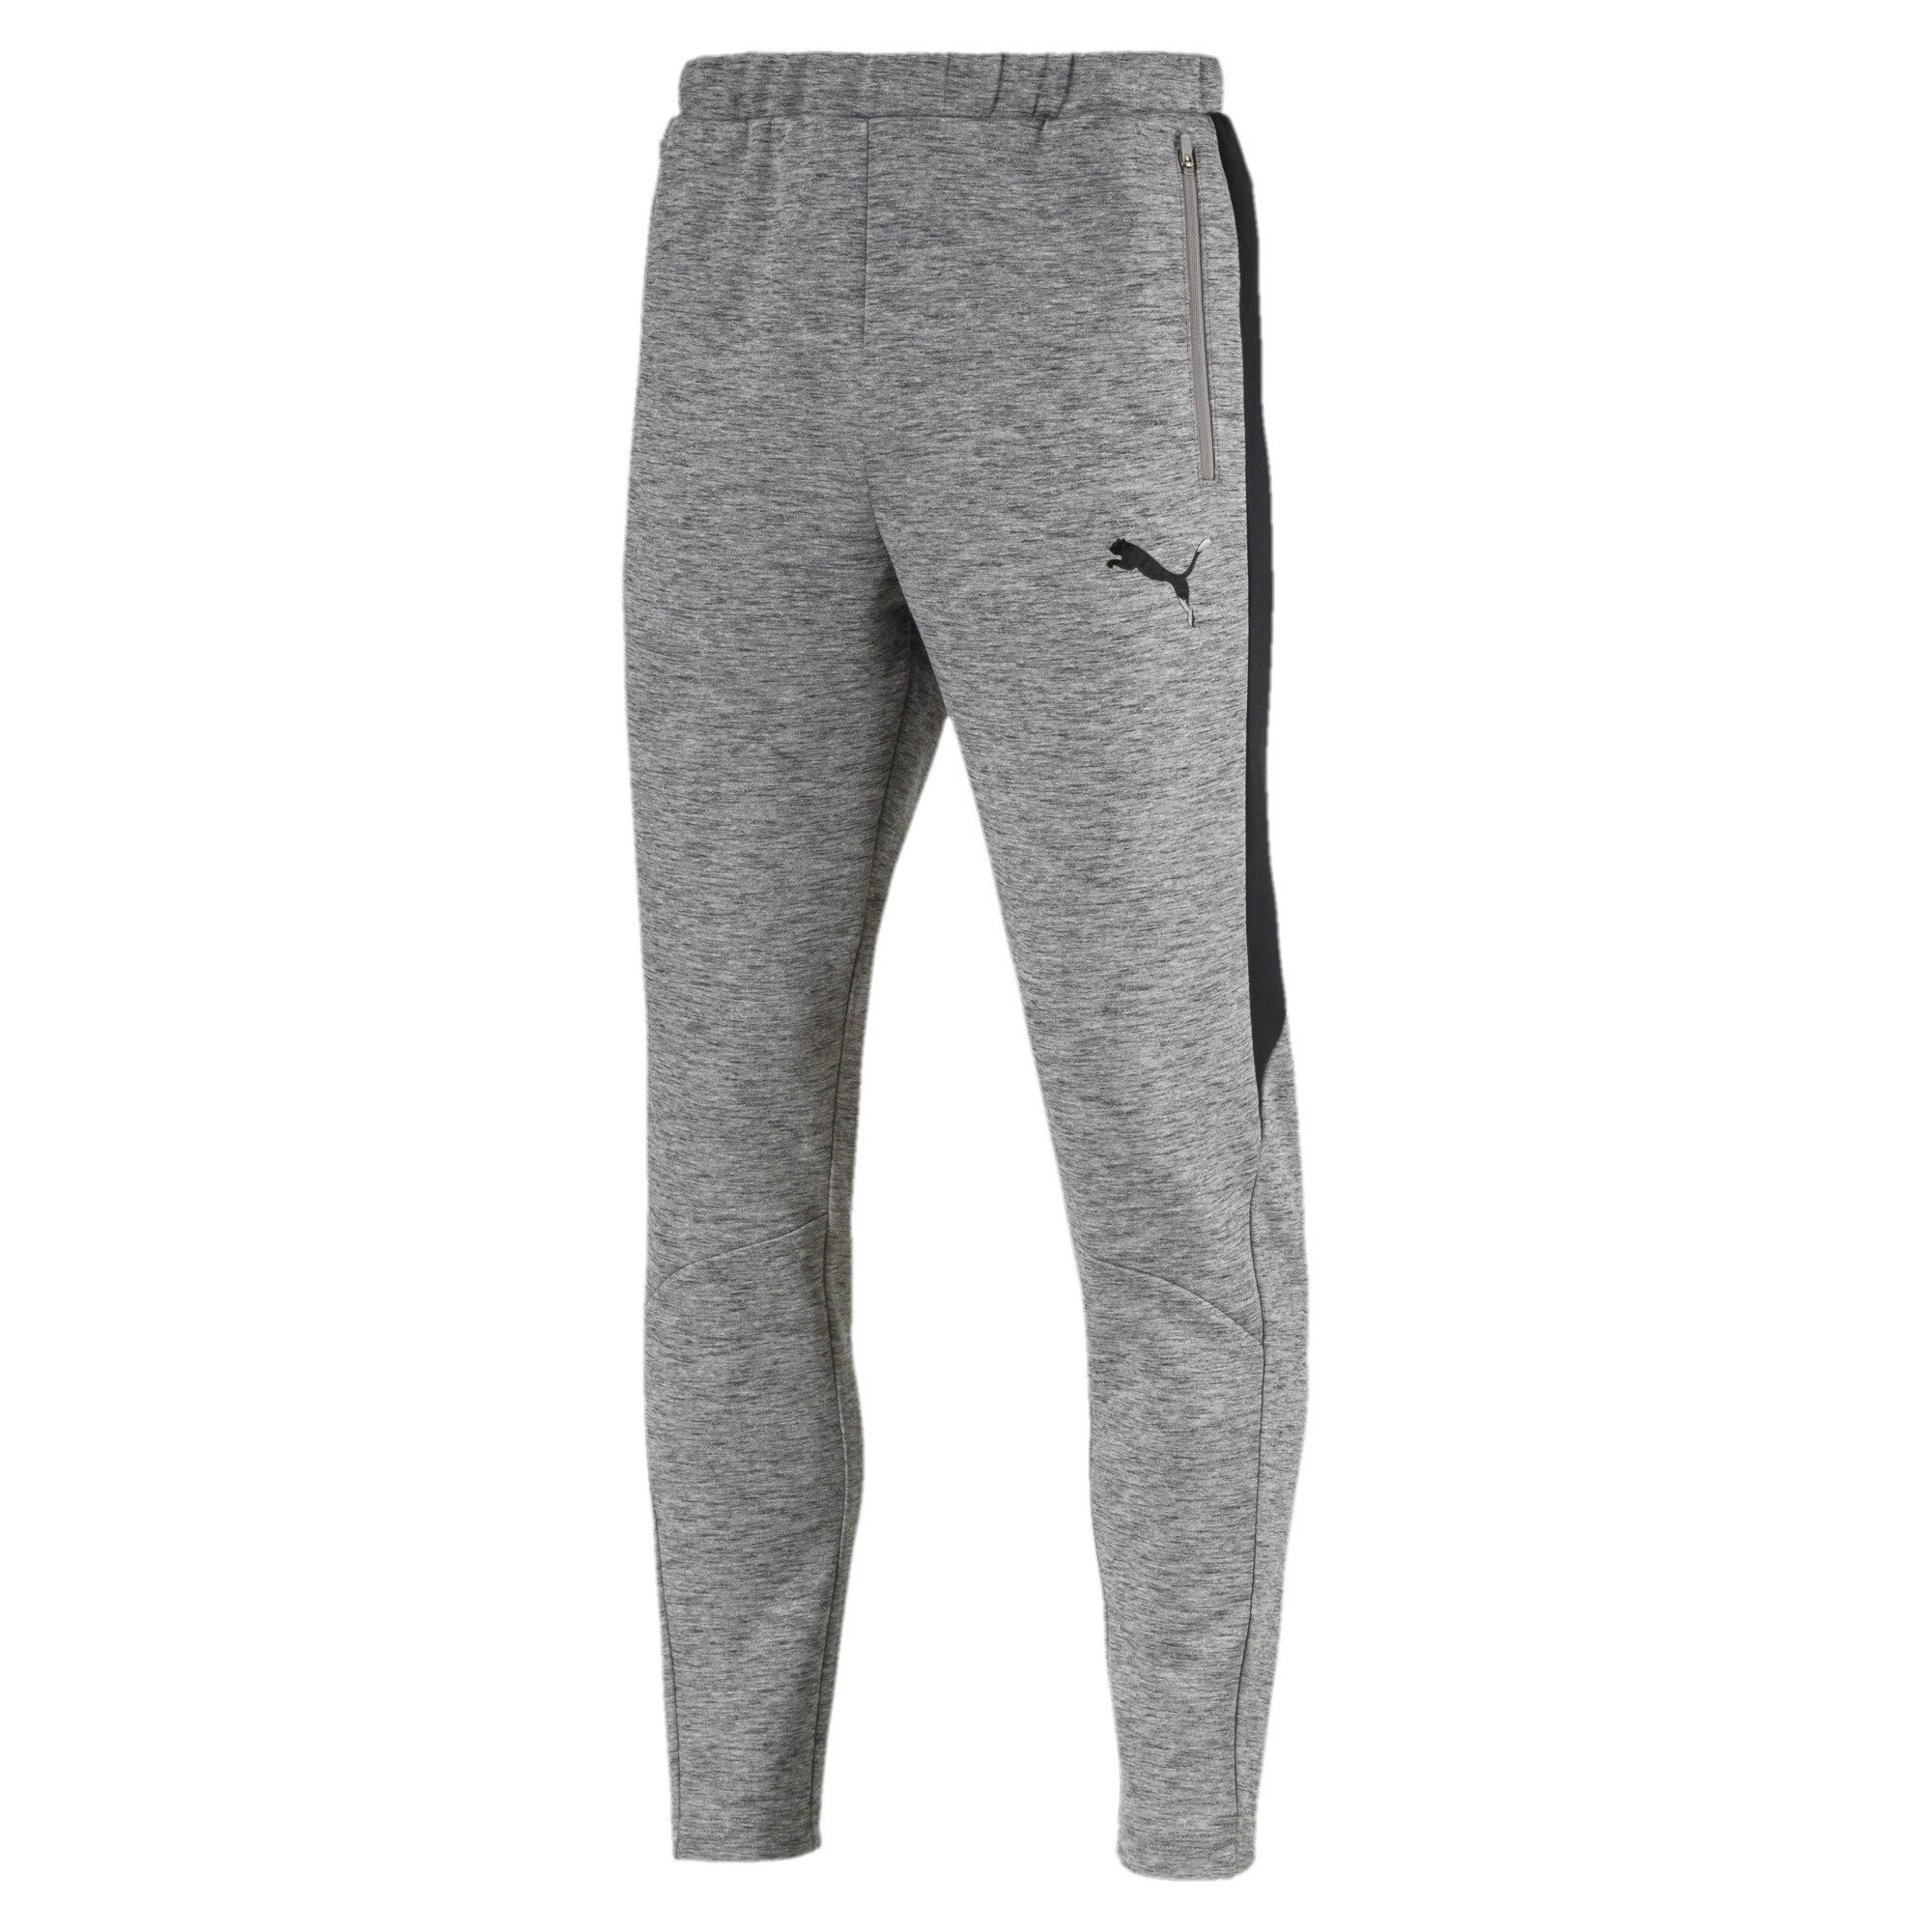 6e22cb087c1daa Official Puma Store: PUMA Evostripe Men's Pants Men Knitted Pants ...